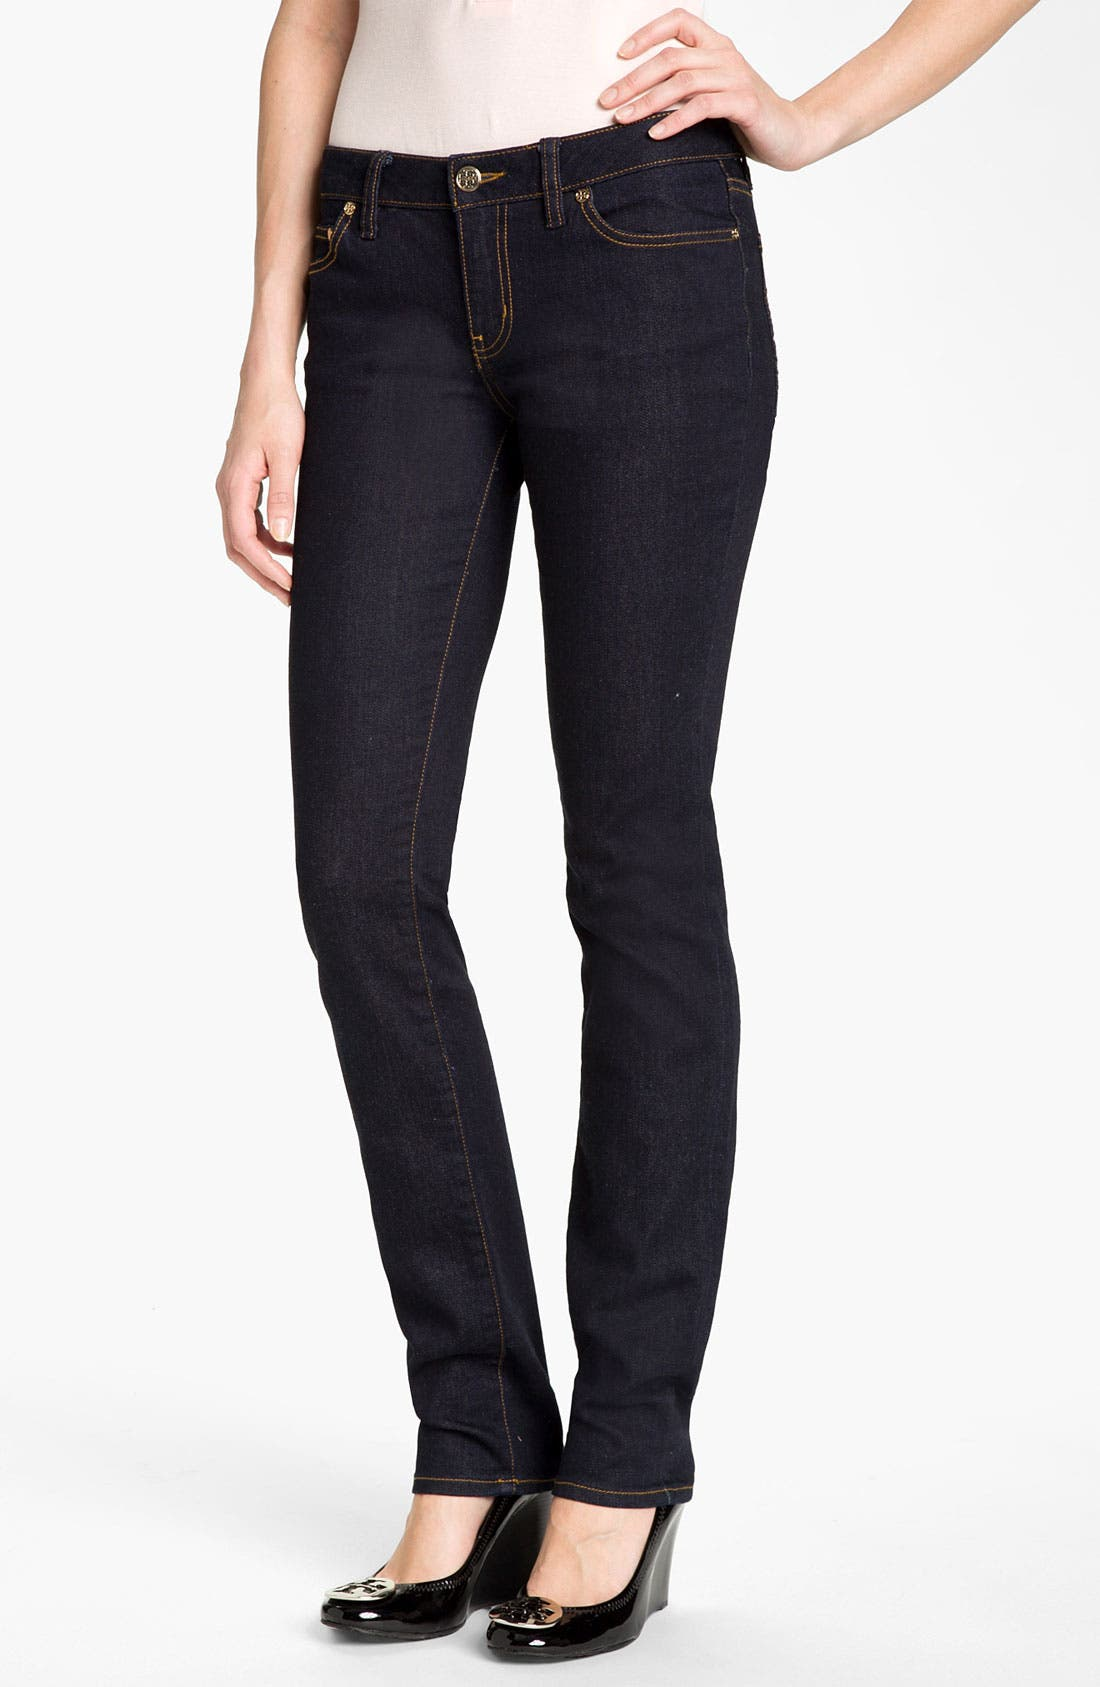 Alternate Image 1 Selected - Tory Burch Super Skinny Stretch Jeans